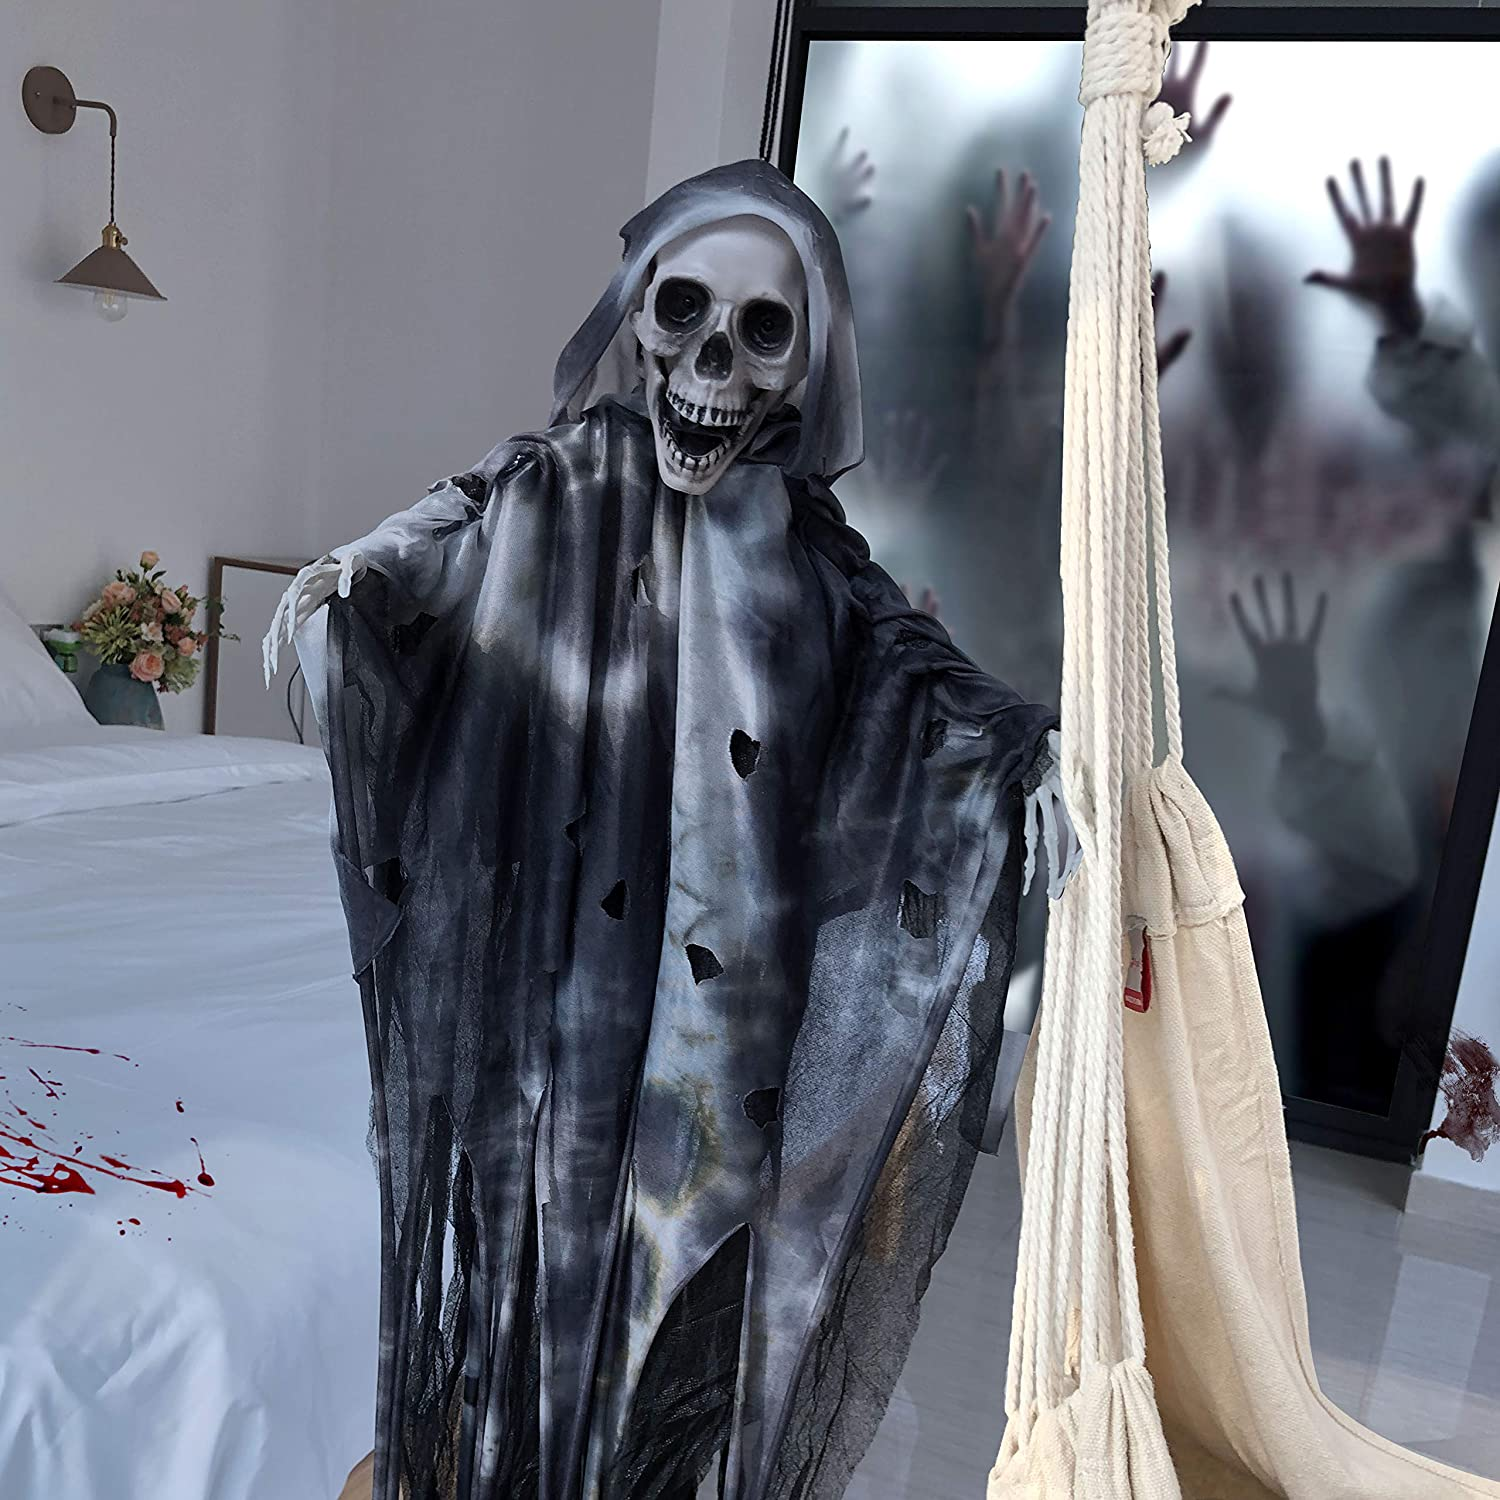 4ft//122cm Tall XONOR Hanging Animated Sound and Touch Activated Talking Skeleton Ghost Halloween Decoration with Glowing Red Eyes